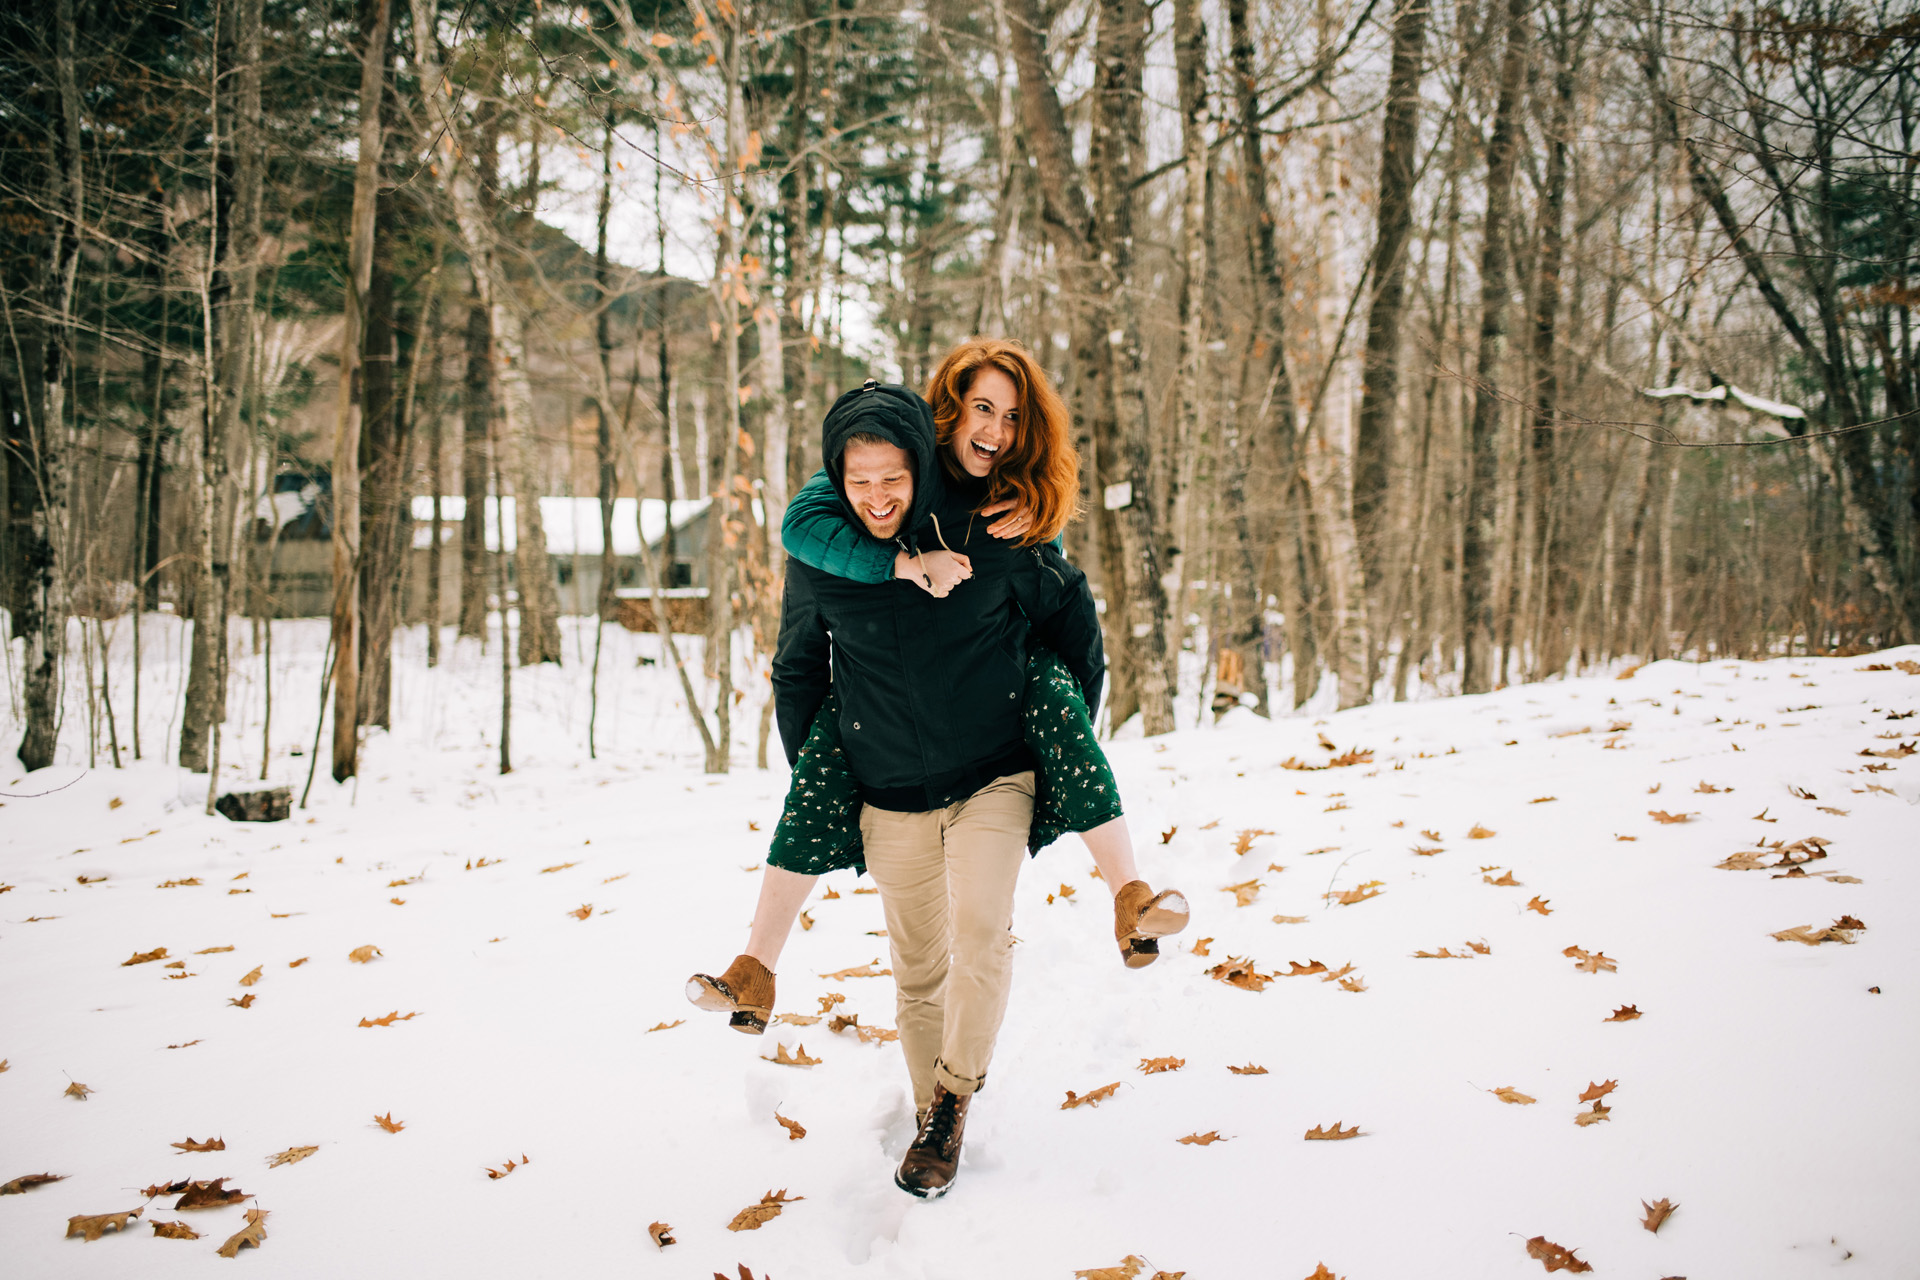 winter-white-mountains-new-hampshire-engagement-14